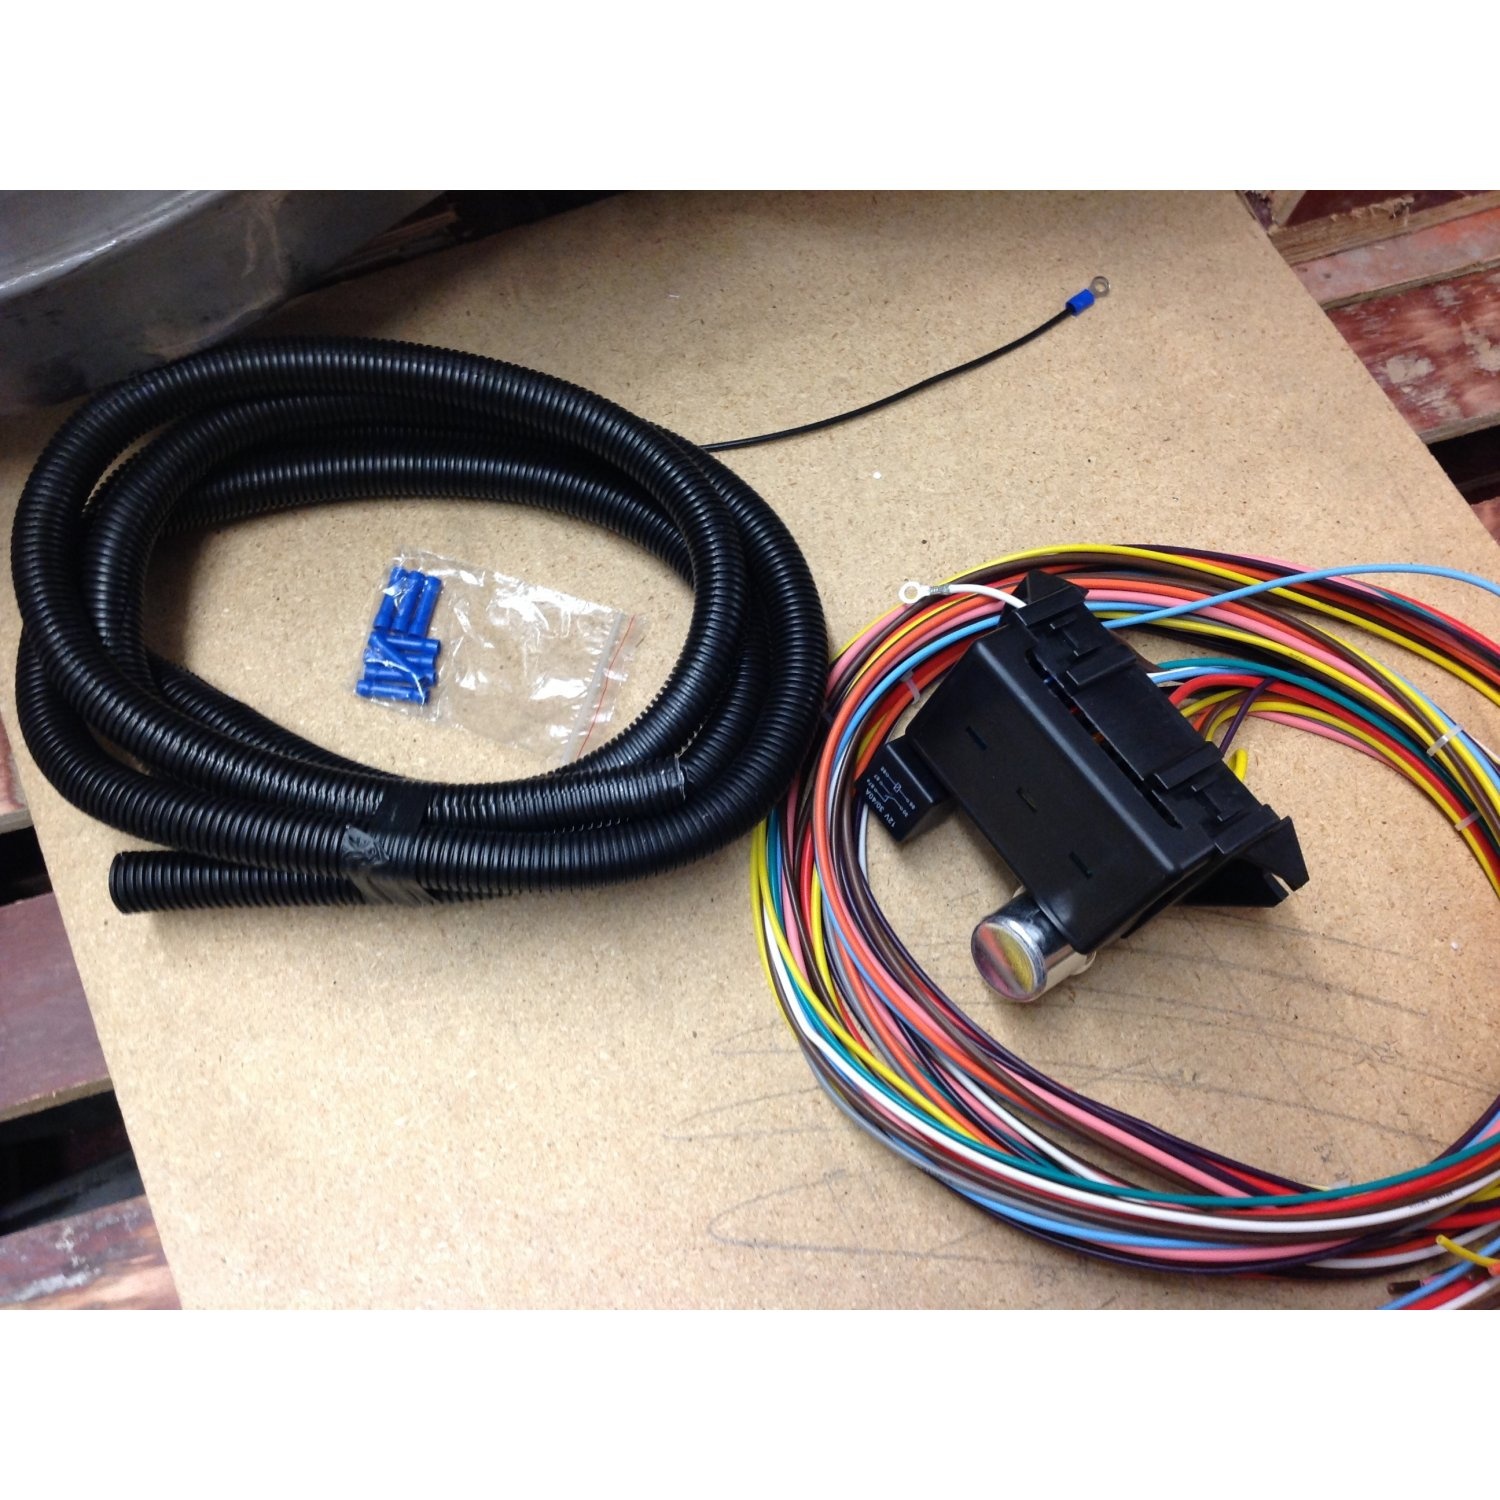 hight resolution of 12v 18 circuit 12 fuse universal wiring harness kit 1956 ford wiring harness repair kit ford